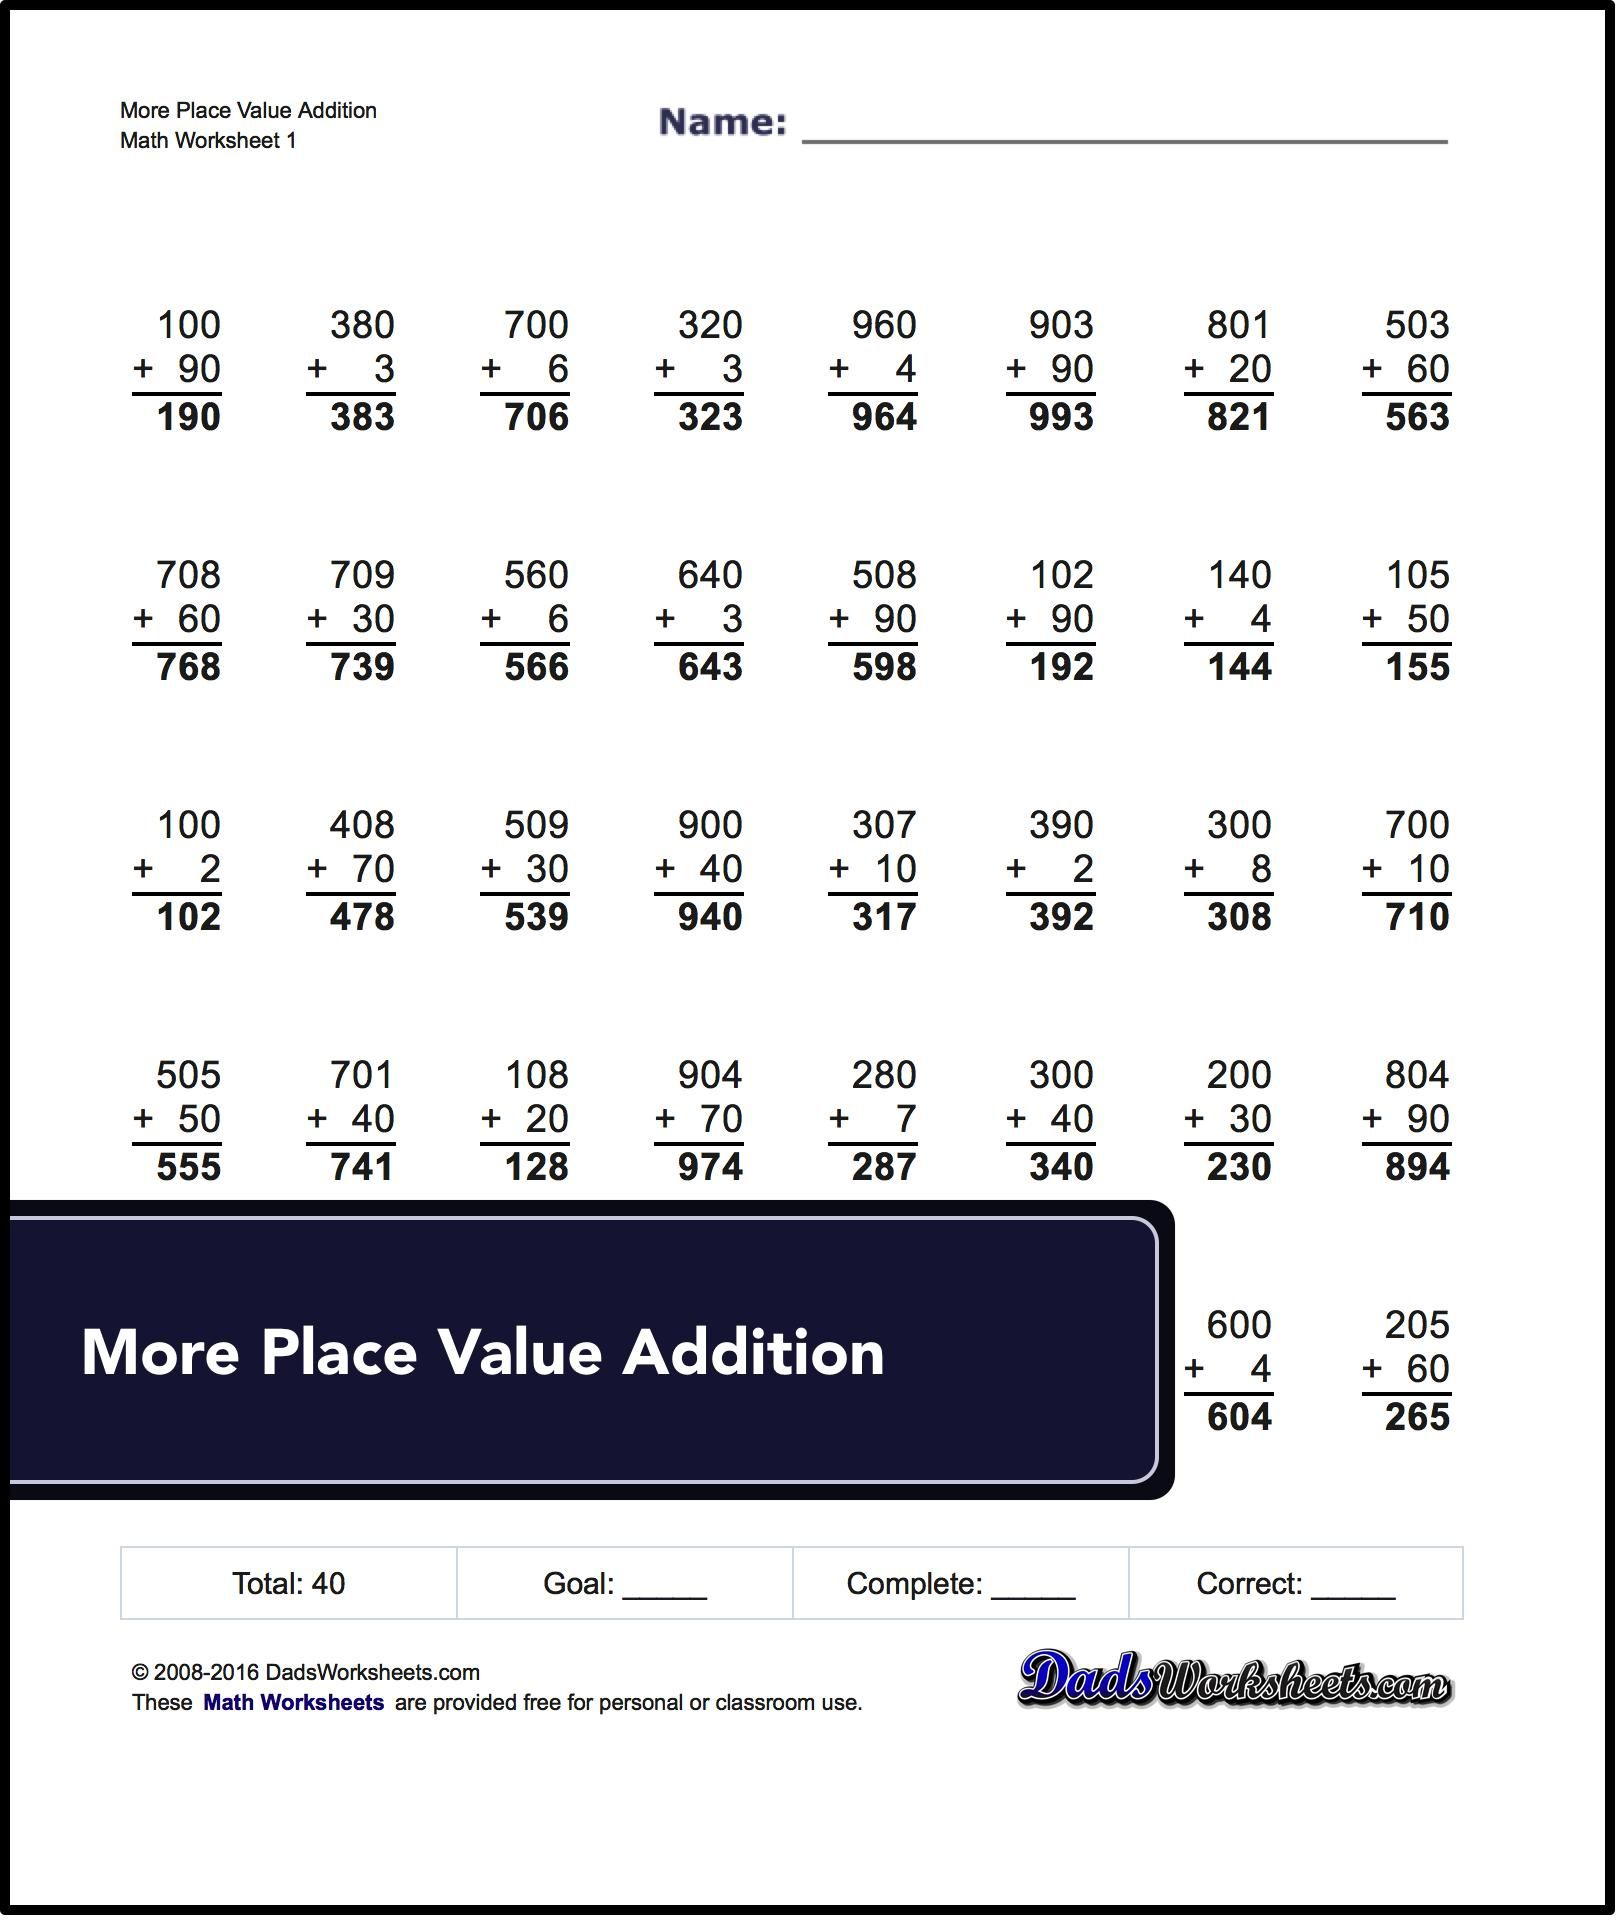 These Place Value Addition Sheets Are Good First Steps Towards Multi Digit Addition Prob Subtraction Facts Worksheet Subtraction Worksheets Addition Worksheets [ 1920 x 1620 Pixel ]